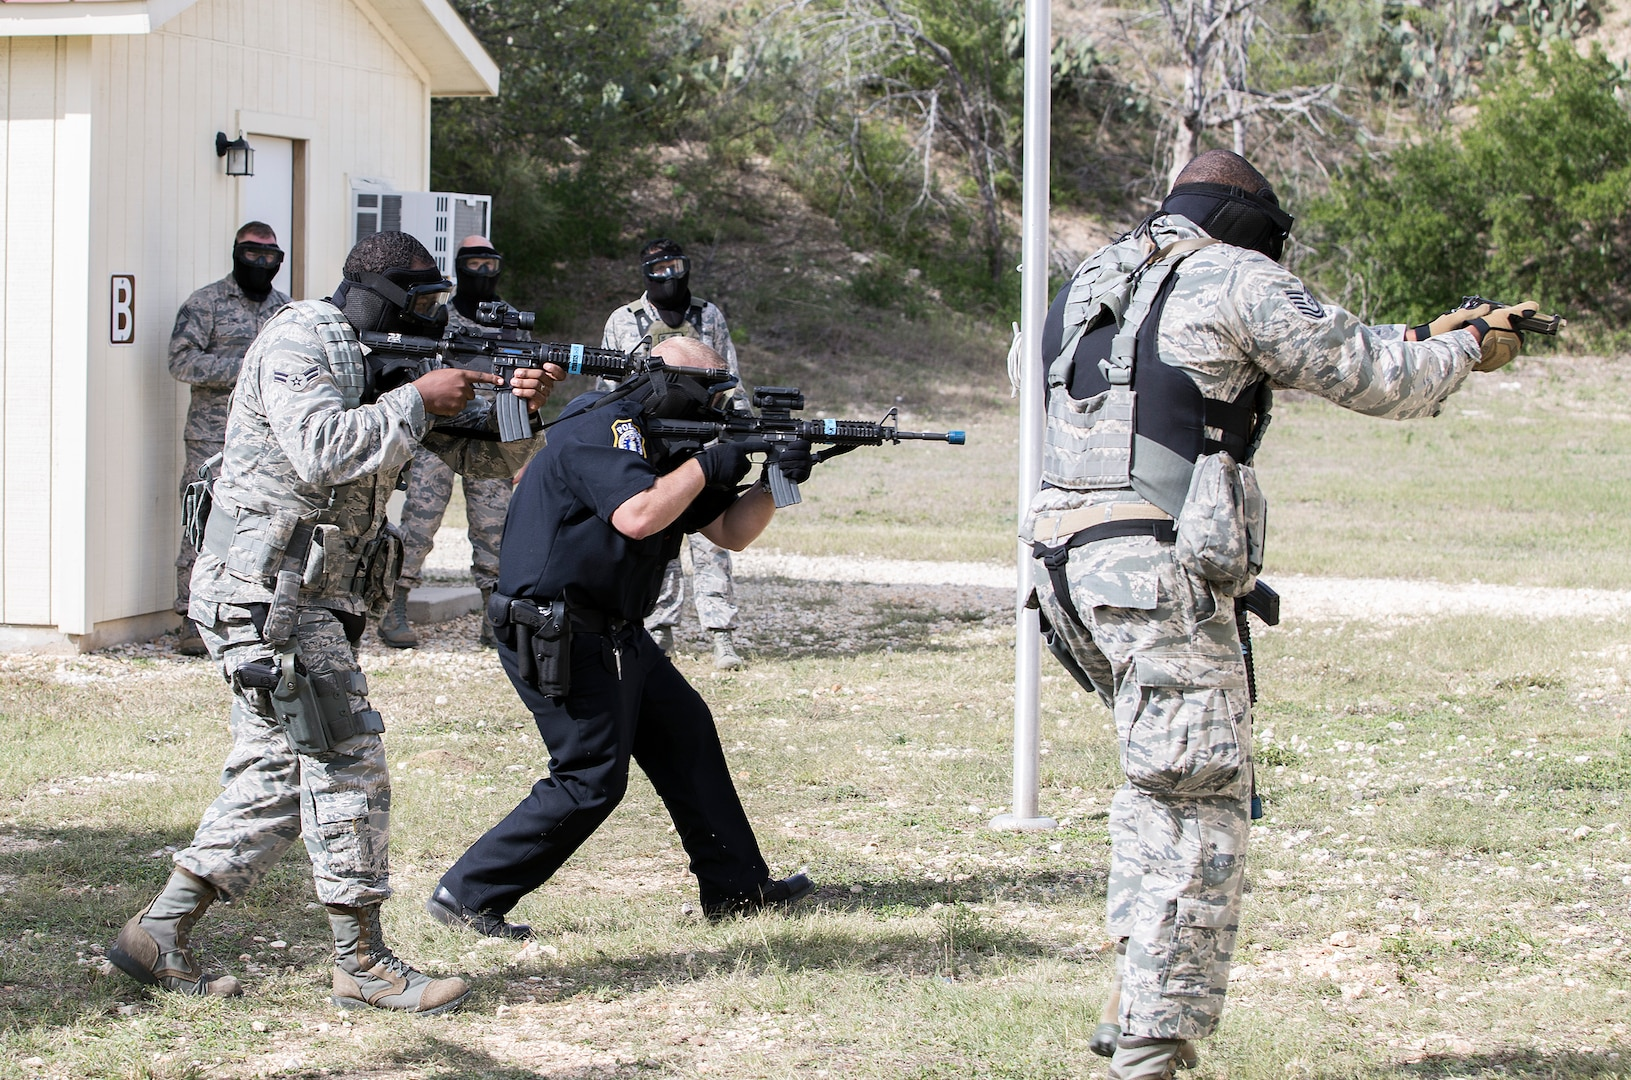 Tech. Sgt. William Graham (at right), Officer Daniel Rolin (center) and Airman 1st Class Joshua Ridgeway (at left), members of the 902nd Security Forces Squadron, push through to neutralize simulated hostile threats during a barricaded suspect exercise Nov. 10 at Joint Base San Antonio-Randolph's Camp Talon. Security forces members exchanged simulated munitions fire with hostiles throughout the exercise, bringing more realism while practicing assault force maneuvers during the exercise scenario. (U.S. Air Force photo by Johnny Saldivar)